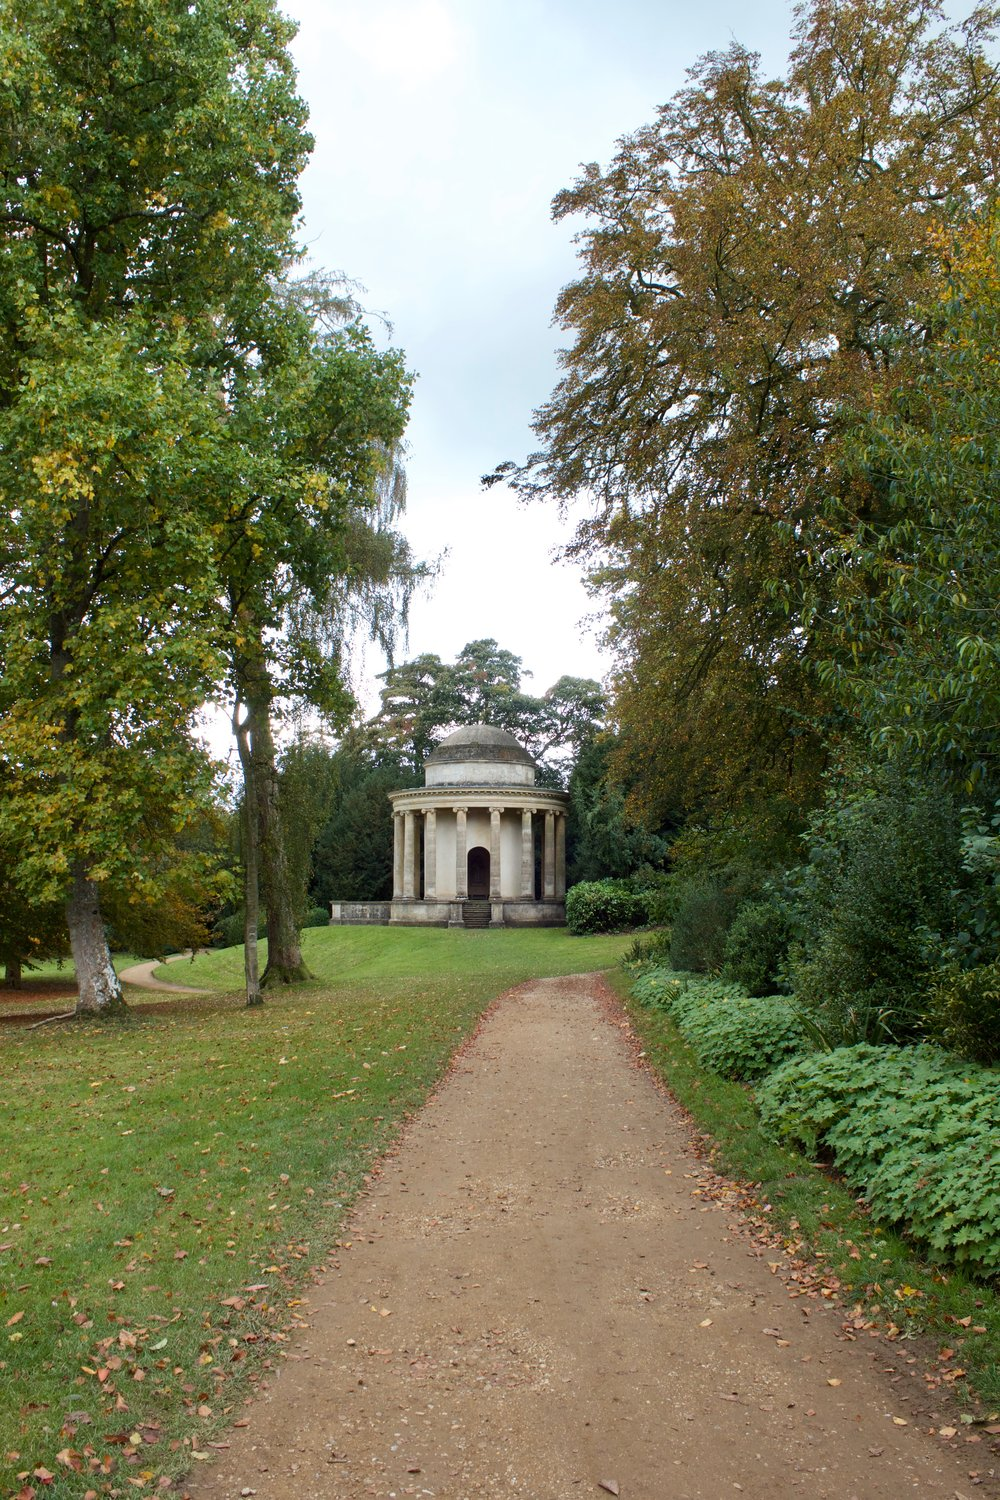 Stowe_House_Temple.jpg